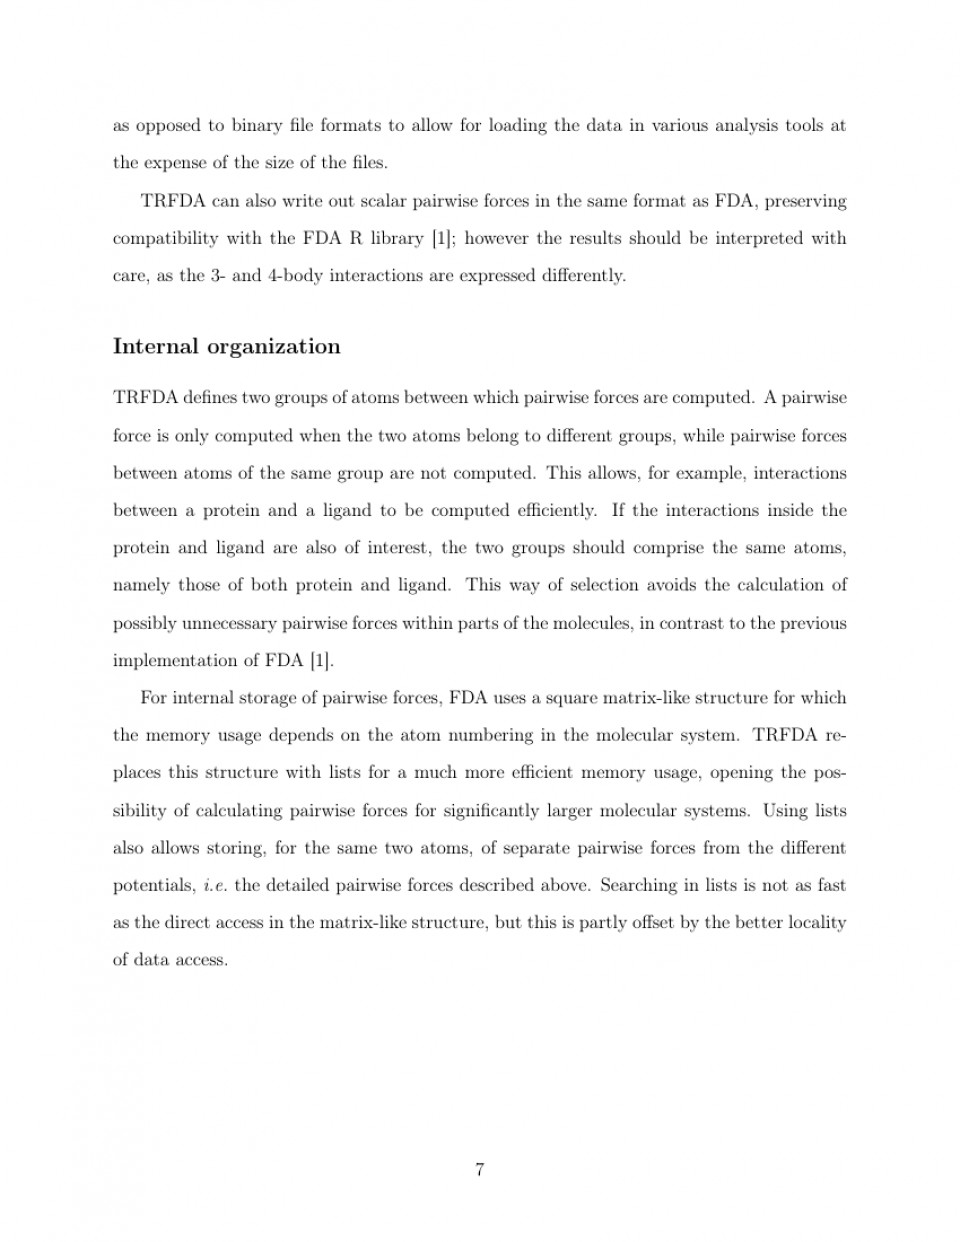 009 Output Research Paper Singular Formats Common Format Apa Template Outline 960